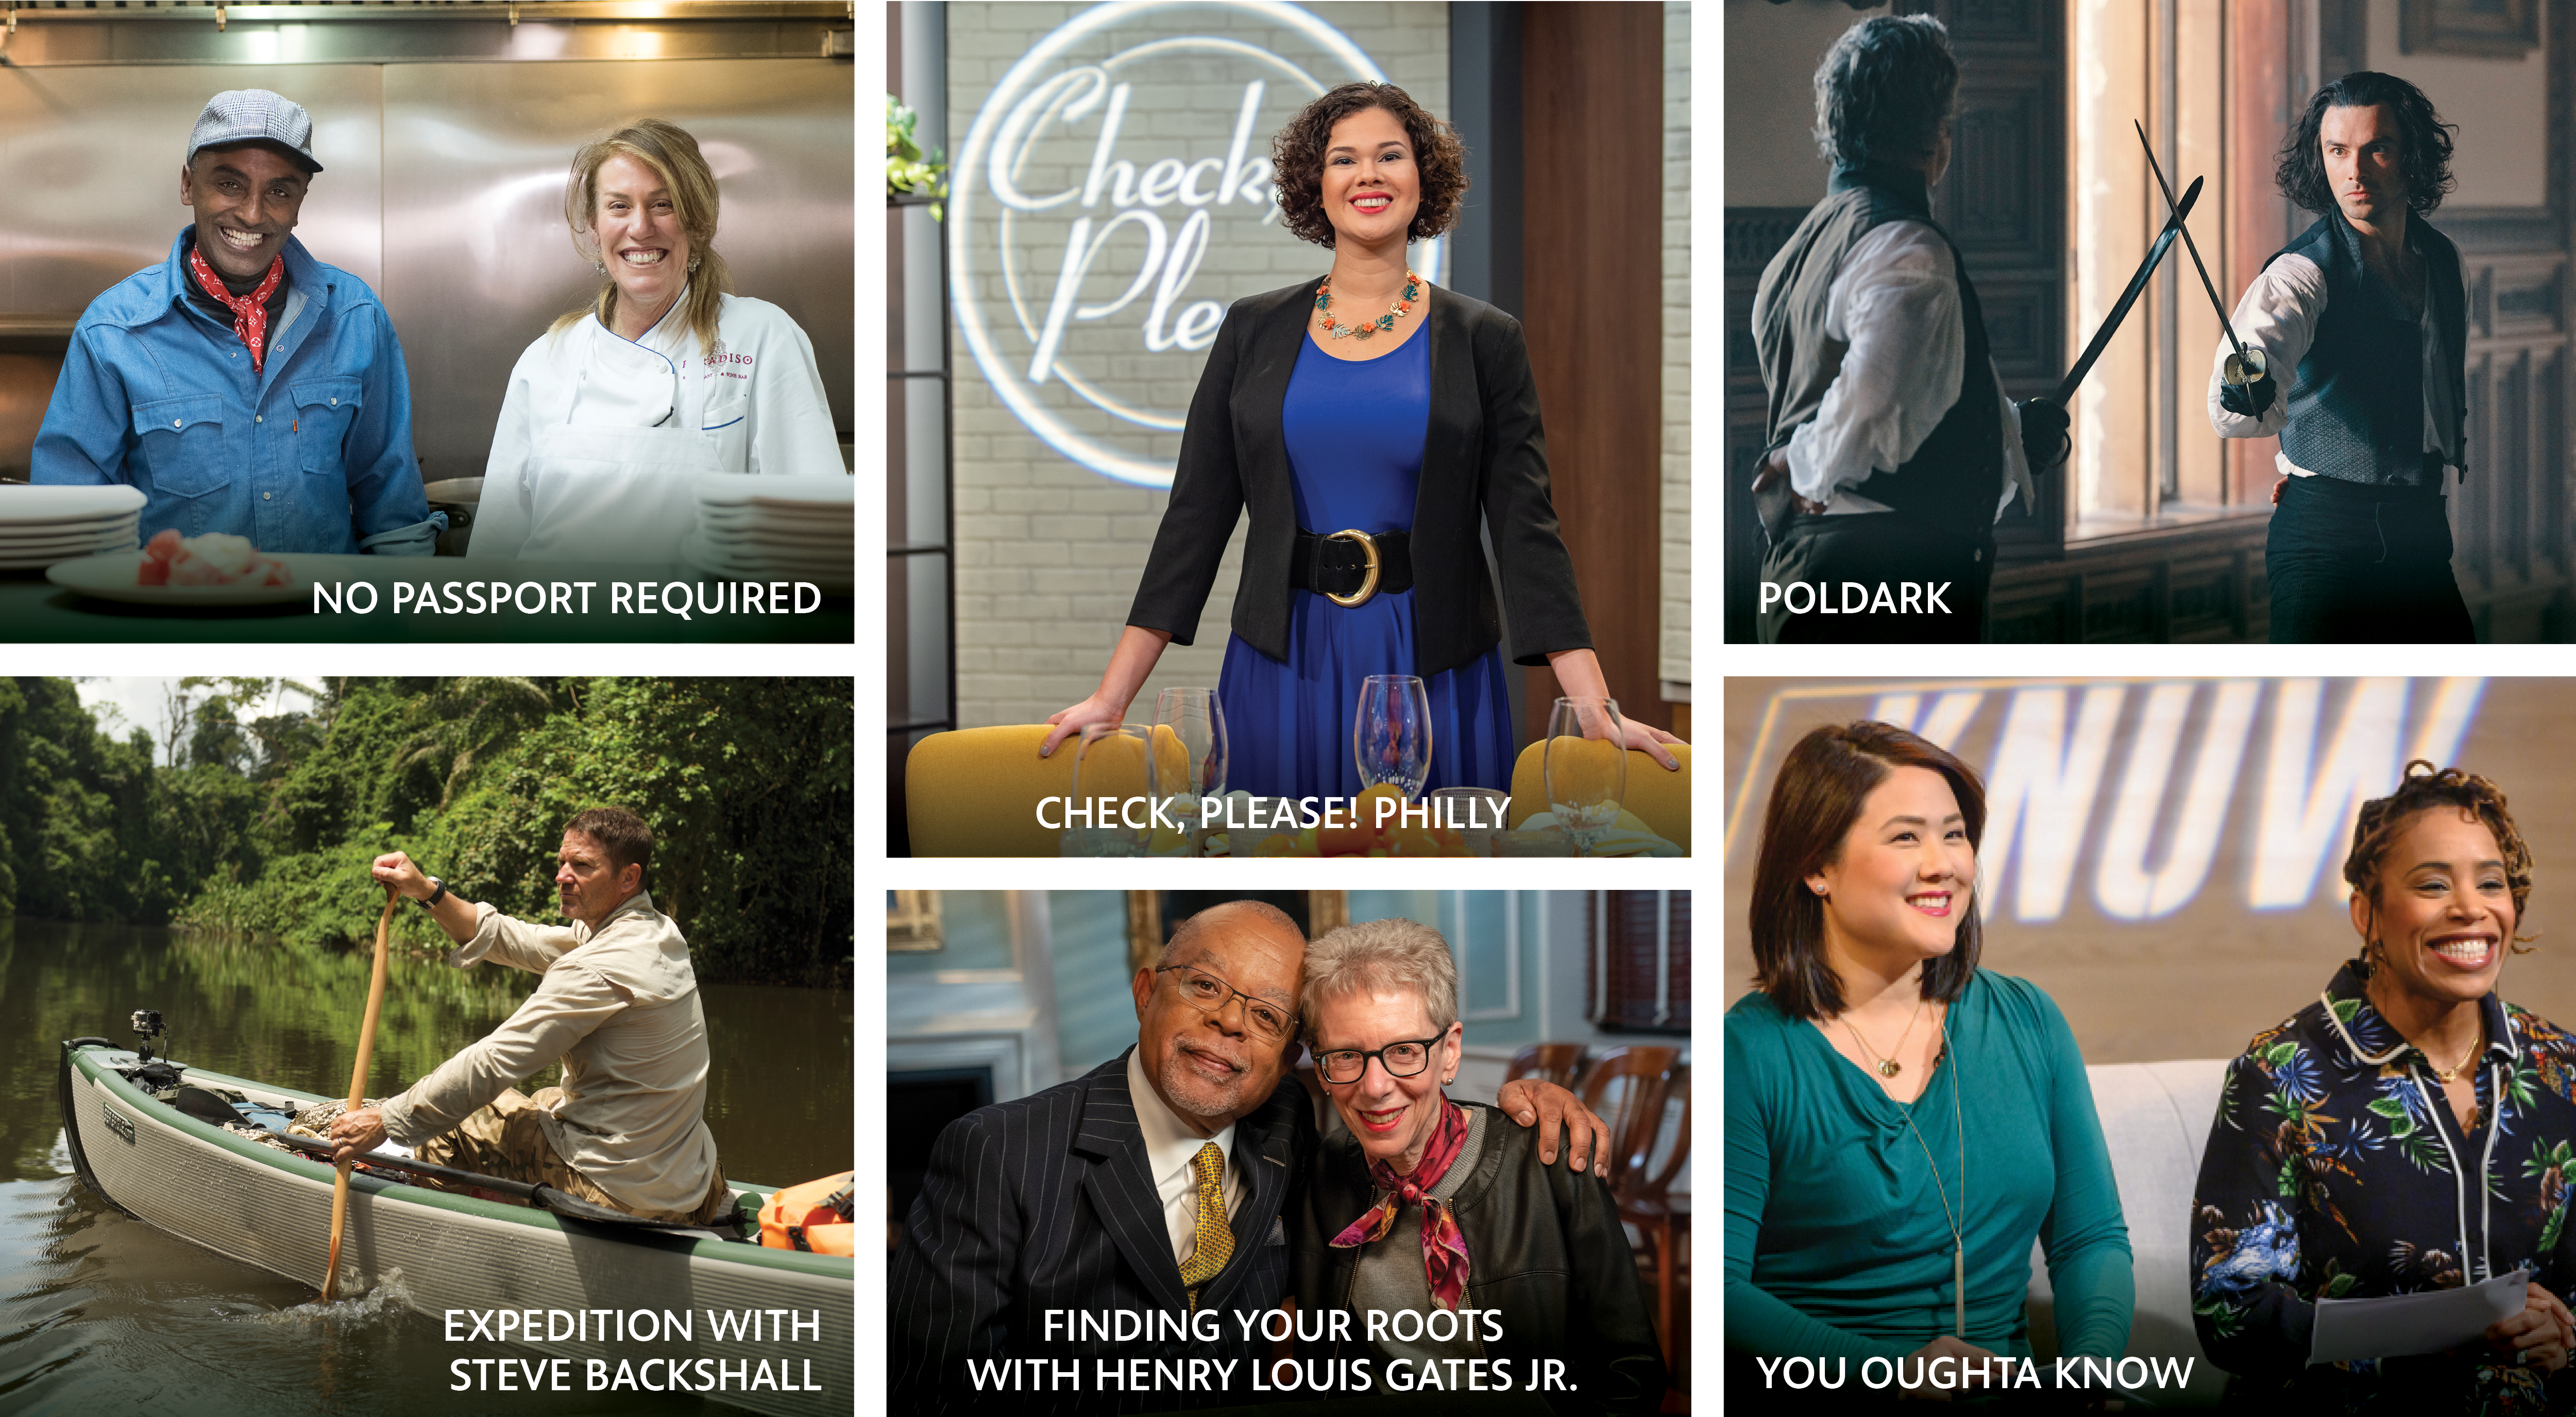 PBS and WHYY local TV shows (No Passport Required, Expedition with Steve Backshall, Check, Please! Philly, Finding Your Roost with Henry Louis Gates Jr, Poldark, You Oughta Know)